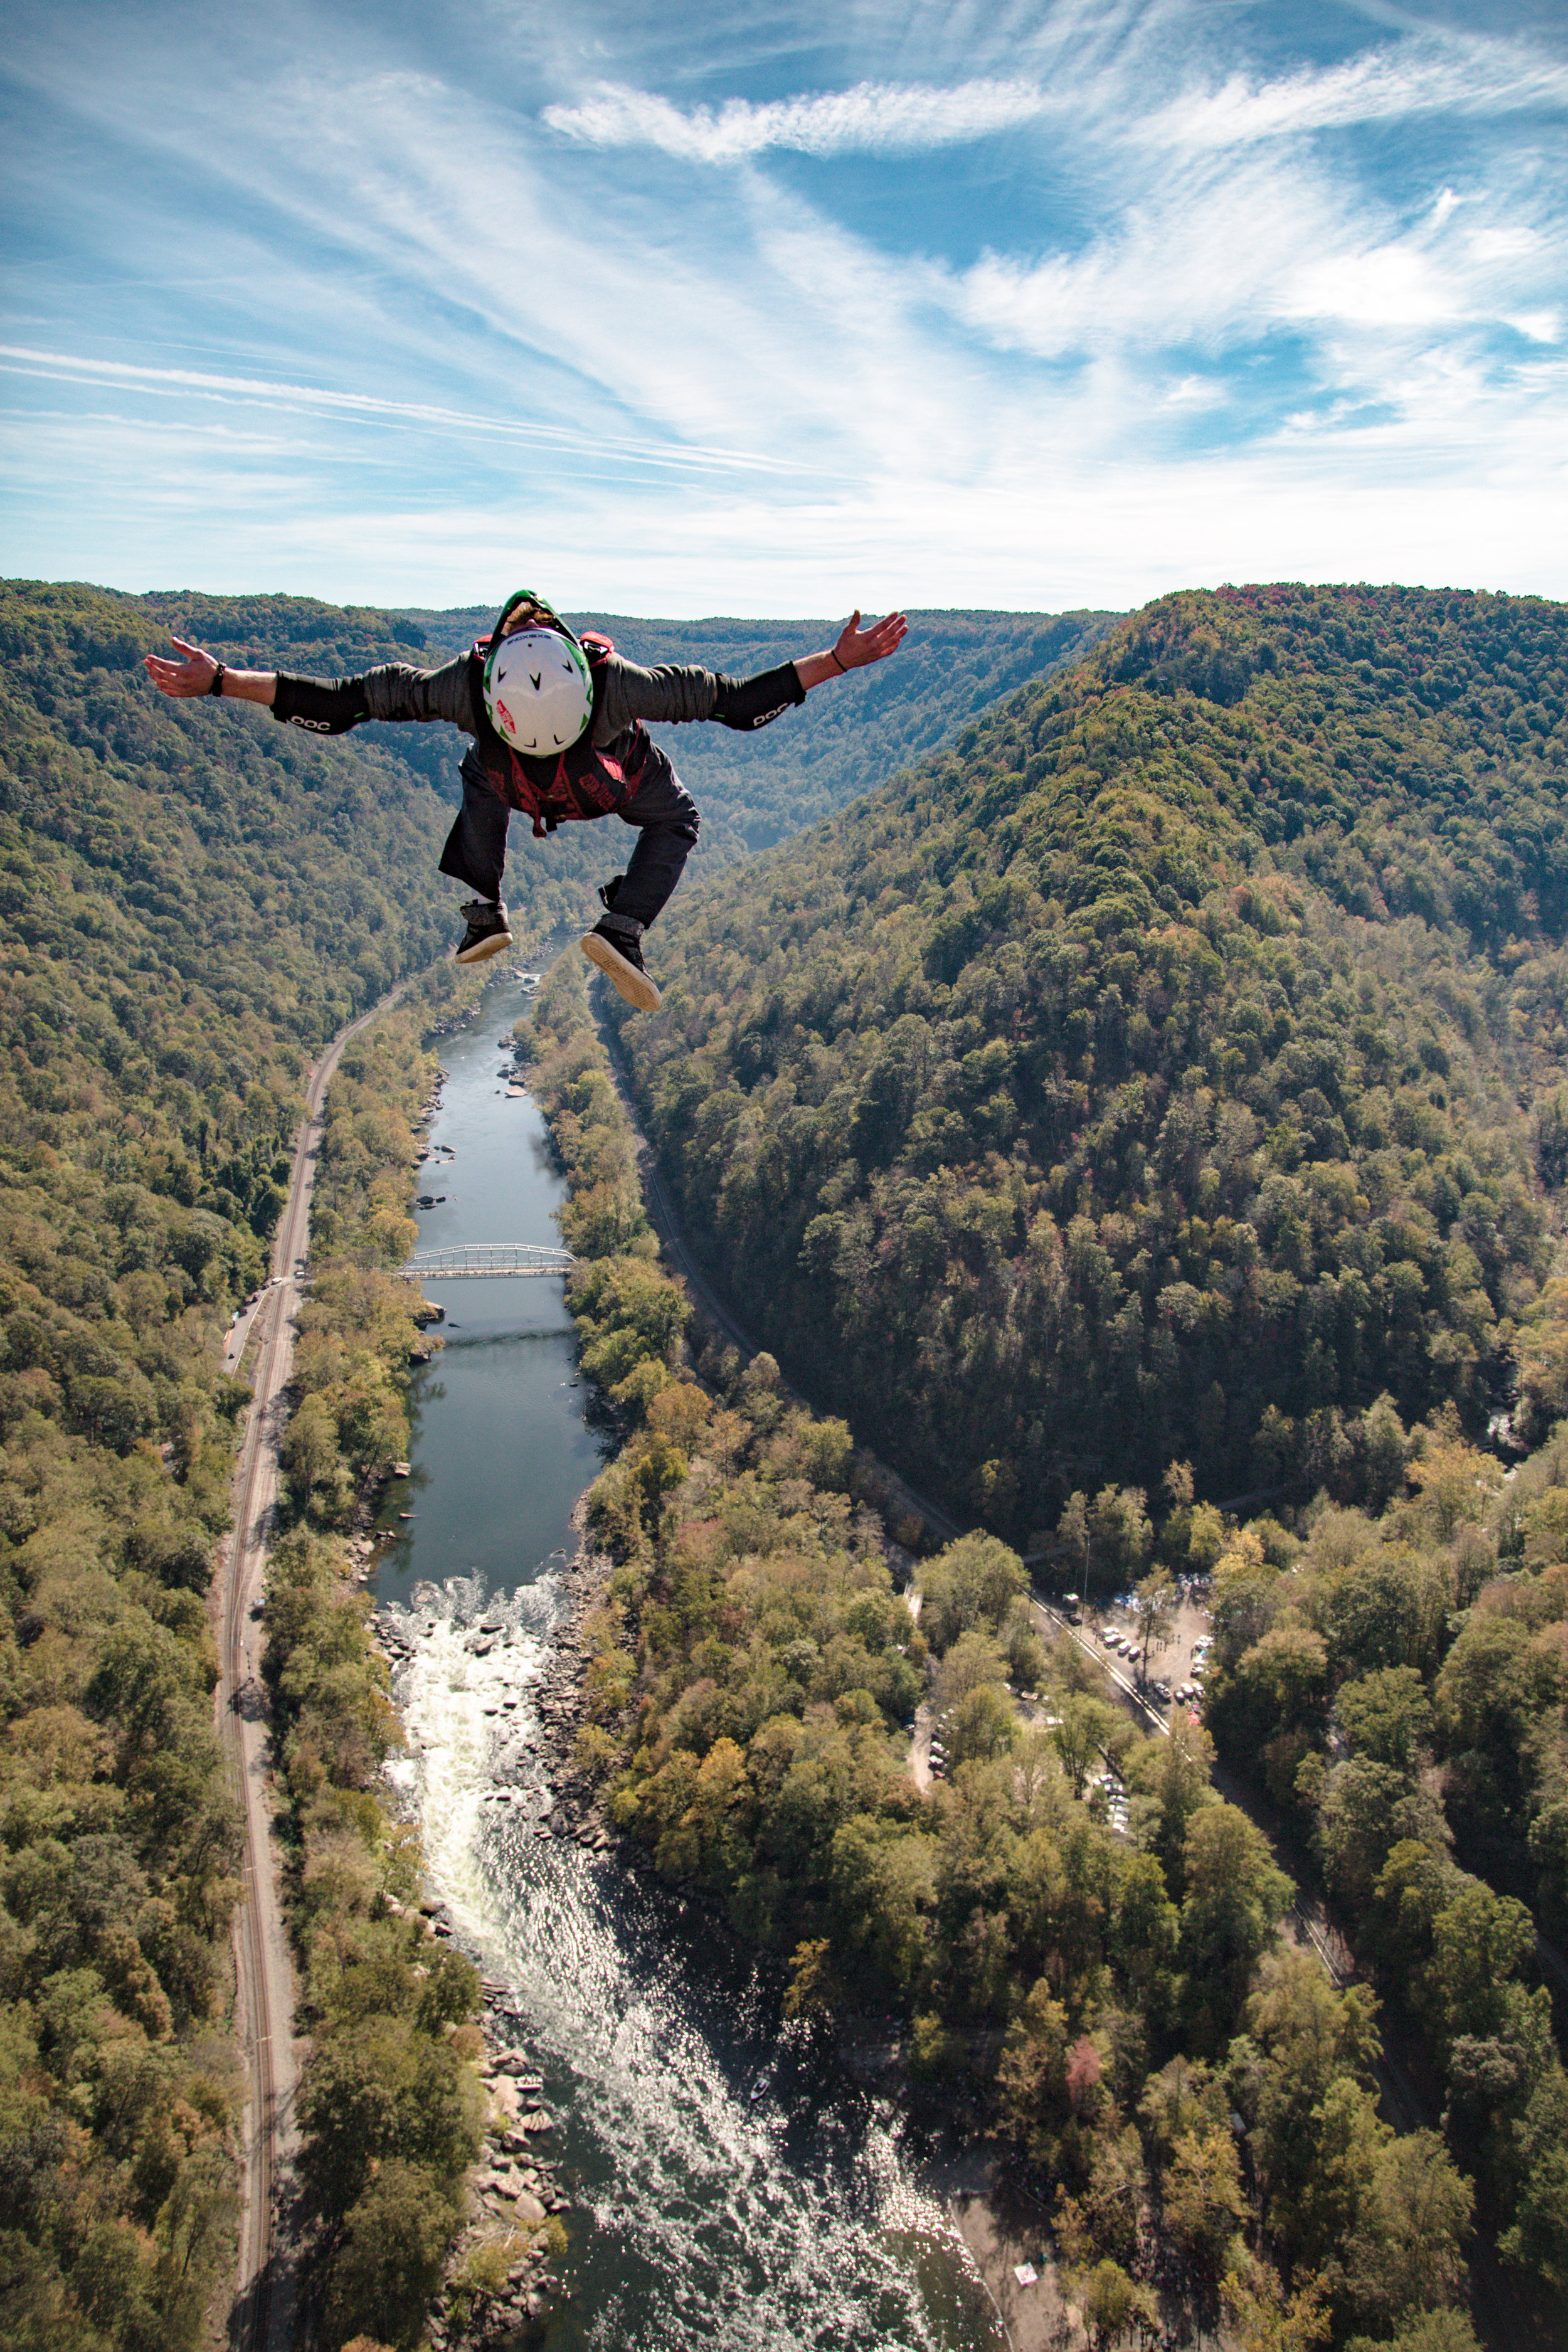 BASE Jumping - Ready to take the leap? Learn more about BASE jumping on Bridge Day!